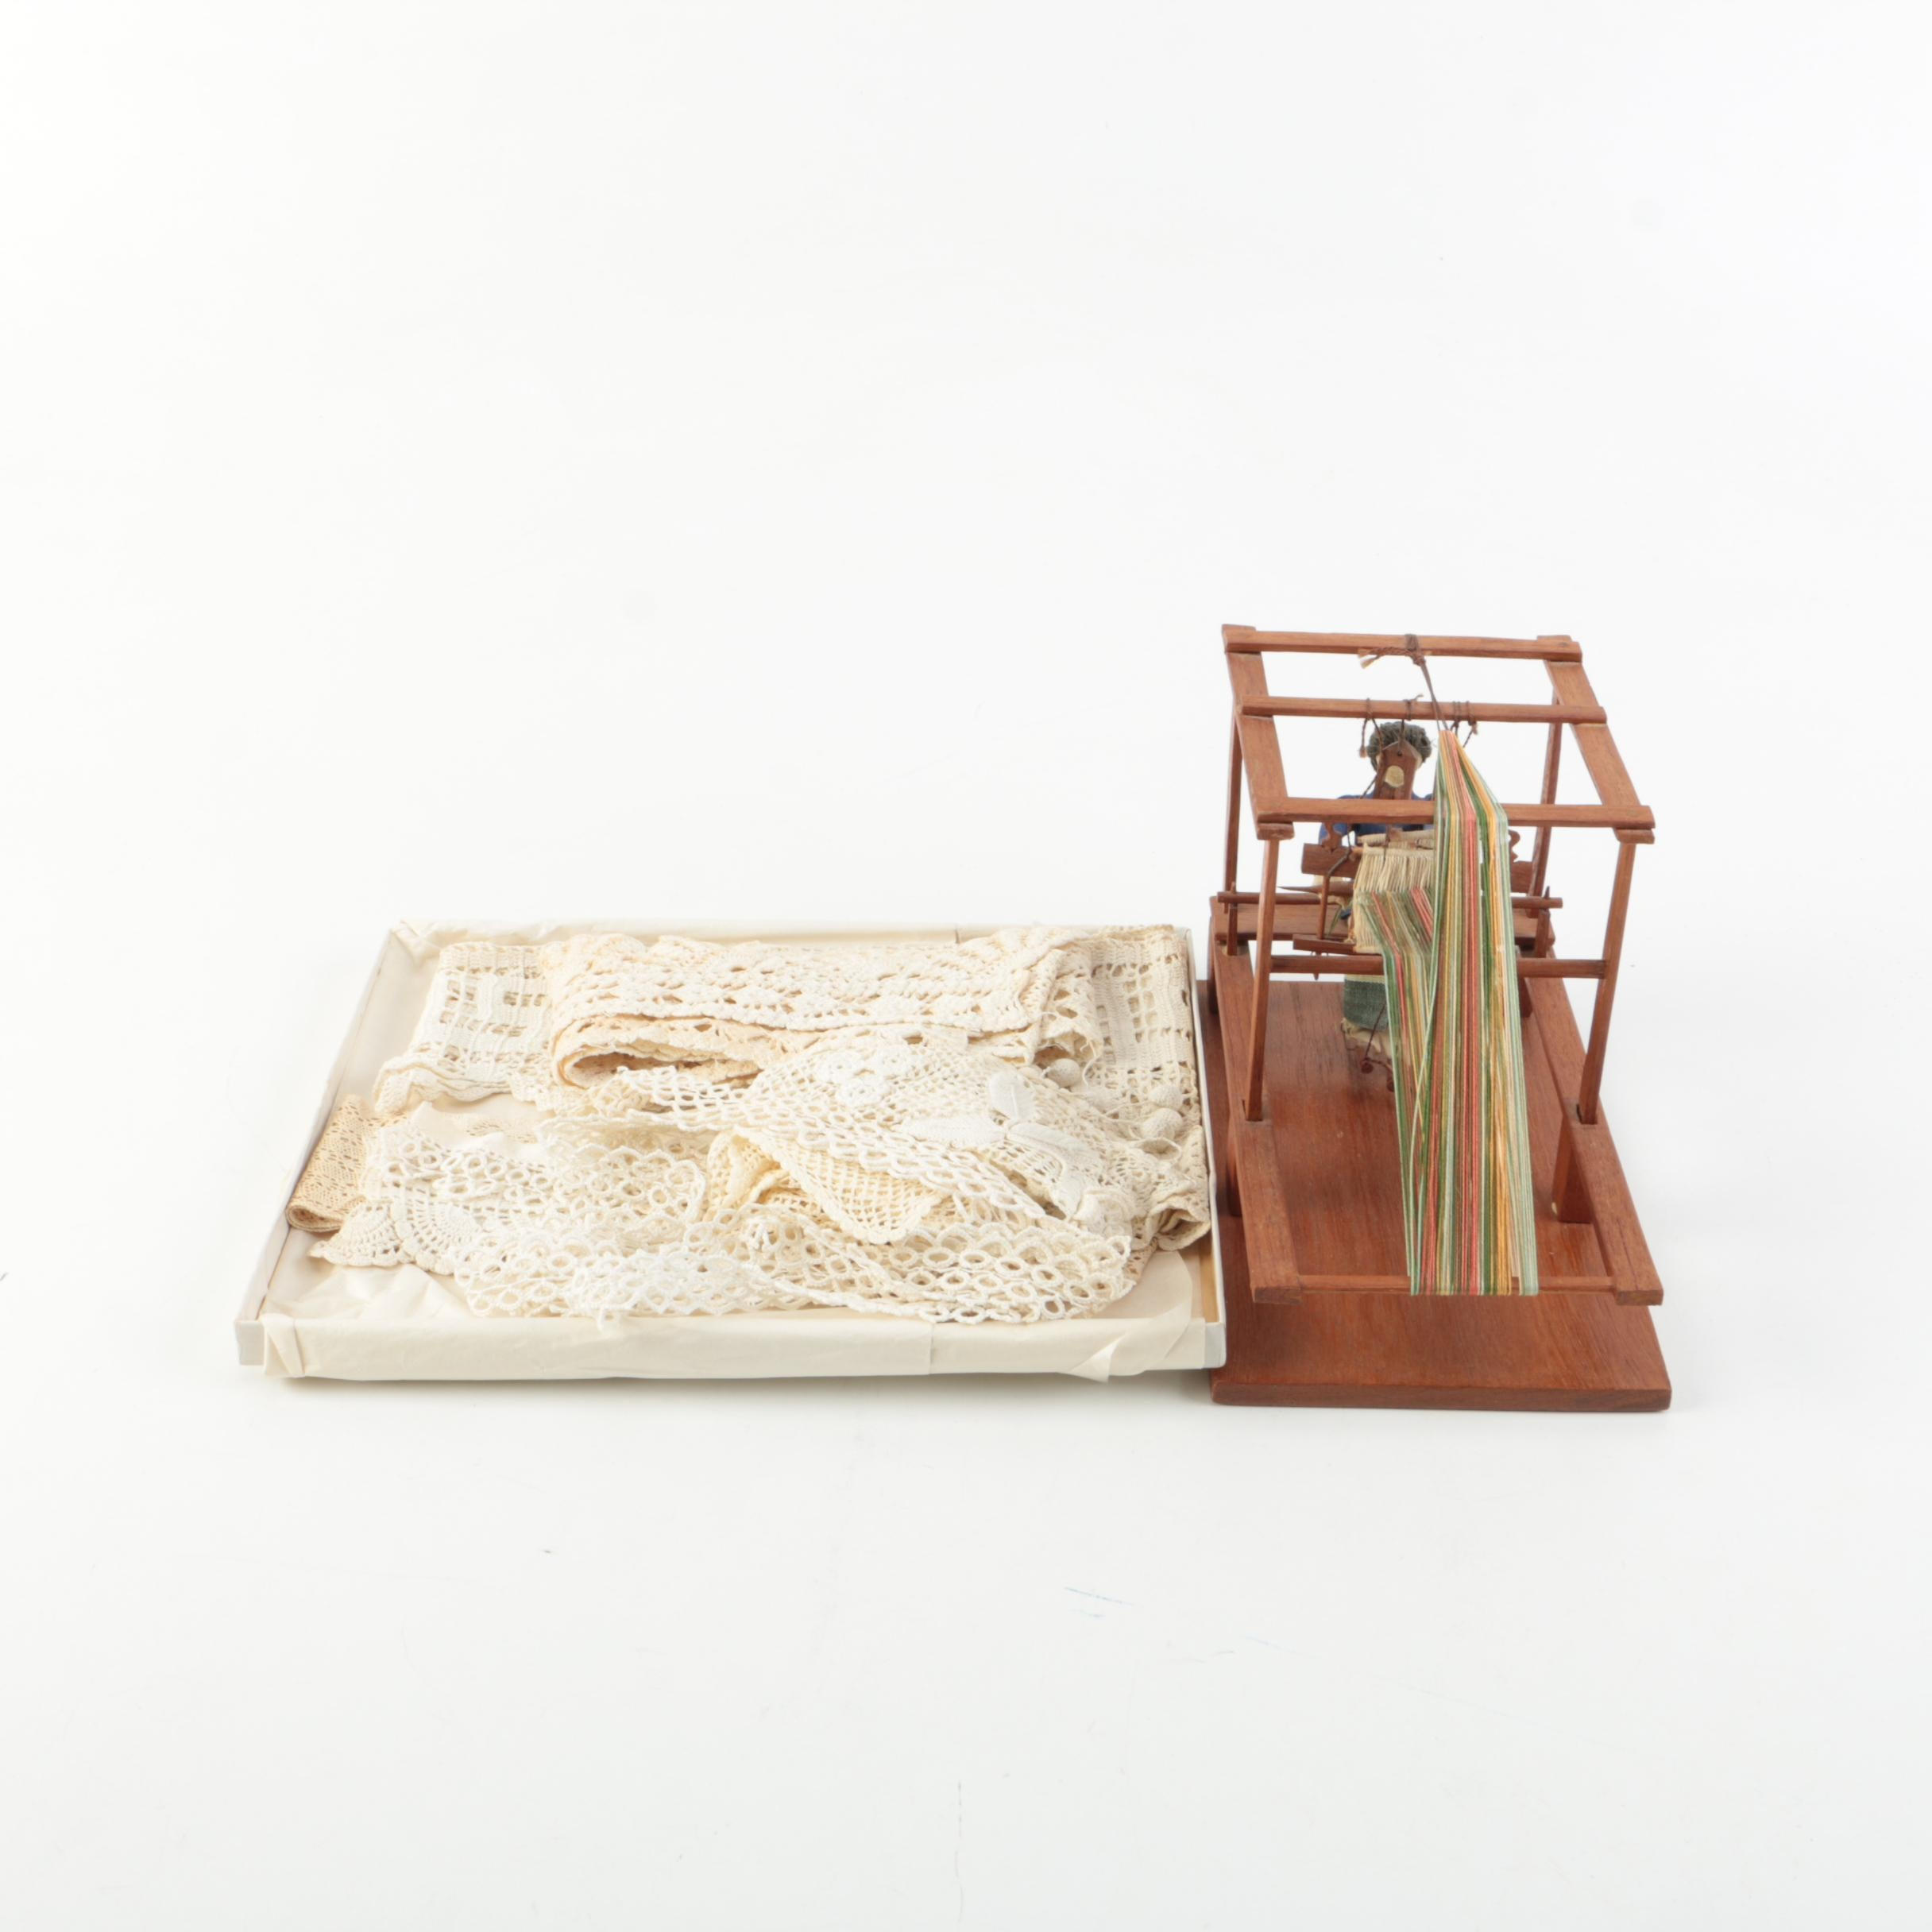 Vintage Lace and Model of Woman at the Loom